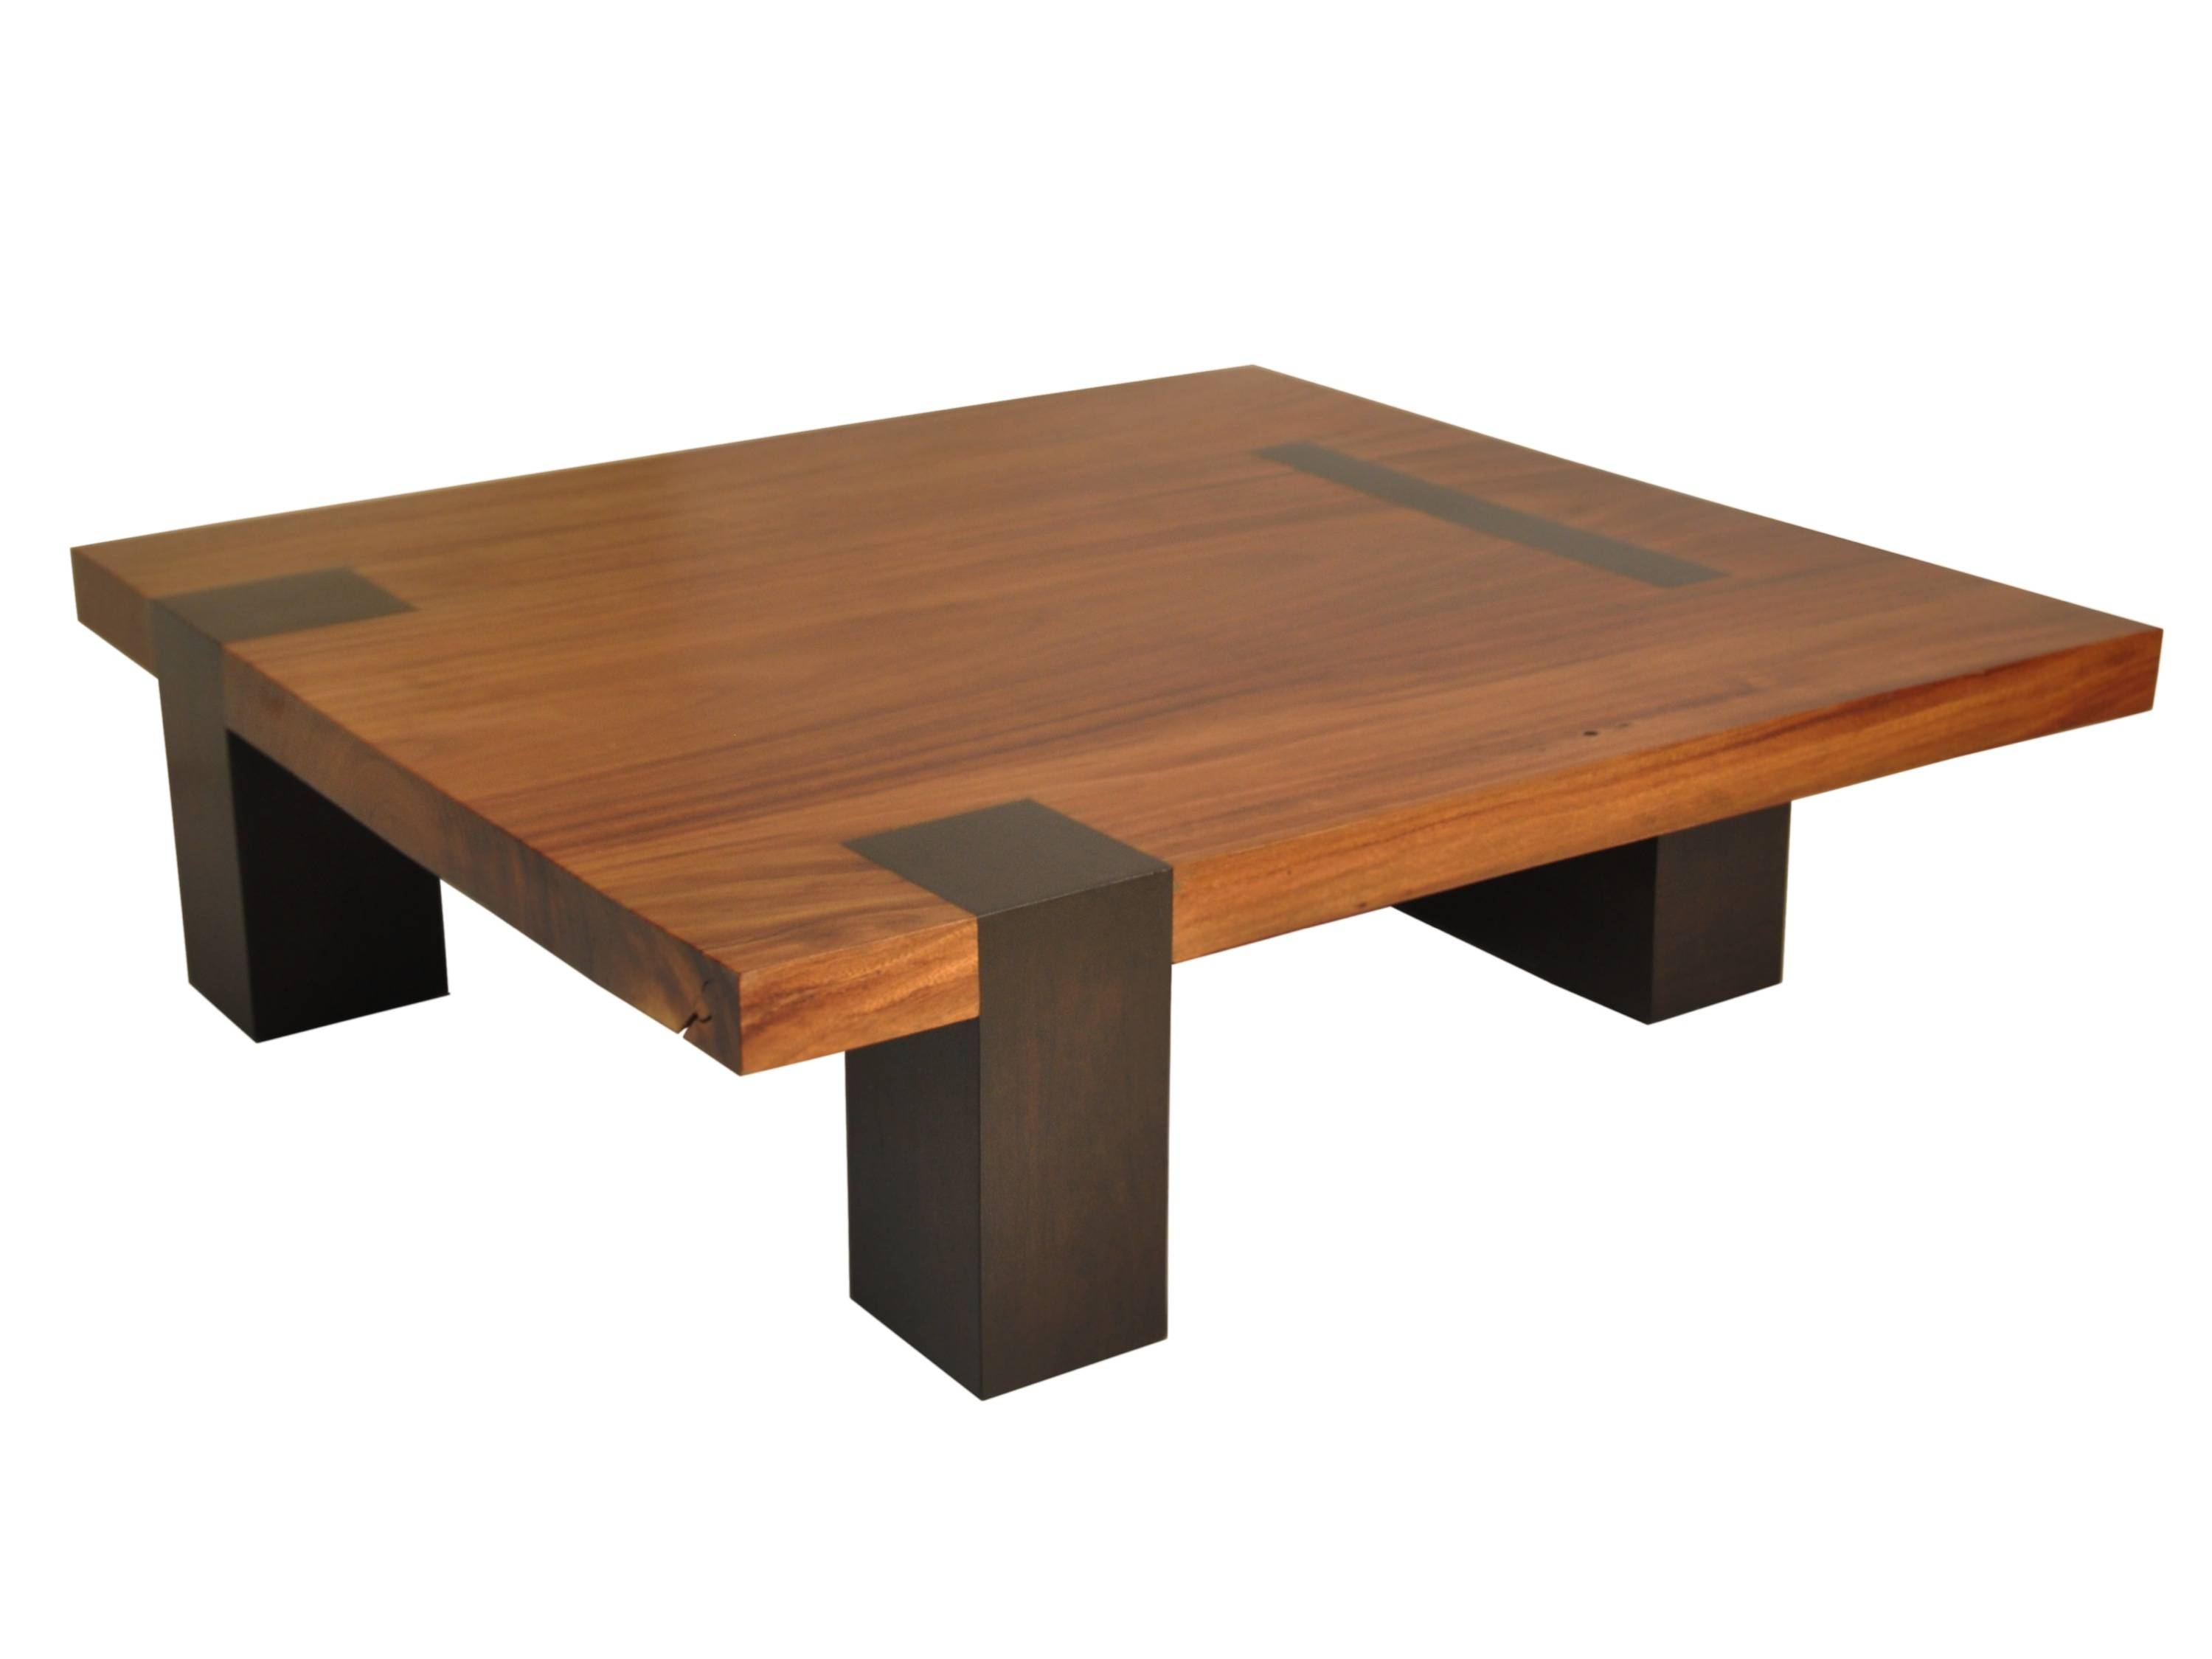 Coffee Tables Ideas: Impressive Square Wood Coffee Table Design with regard to Huge Square Coffee Tables (Image 8 of 15)